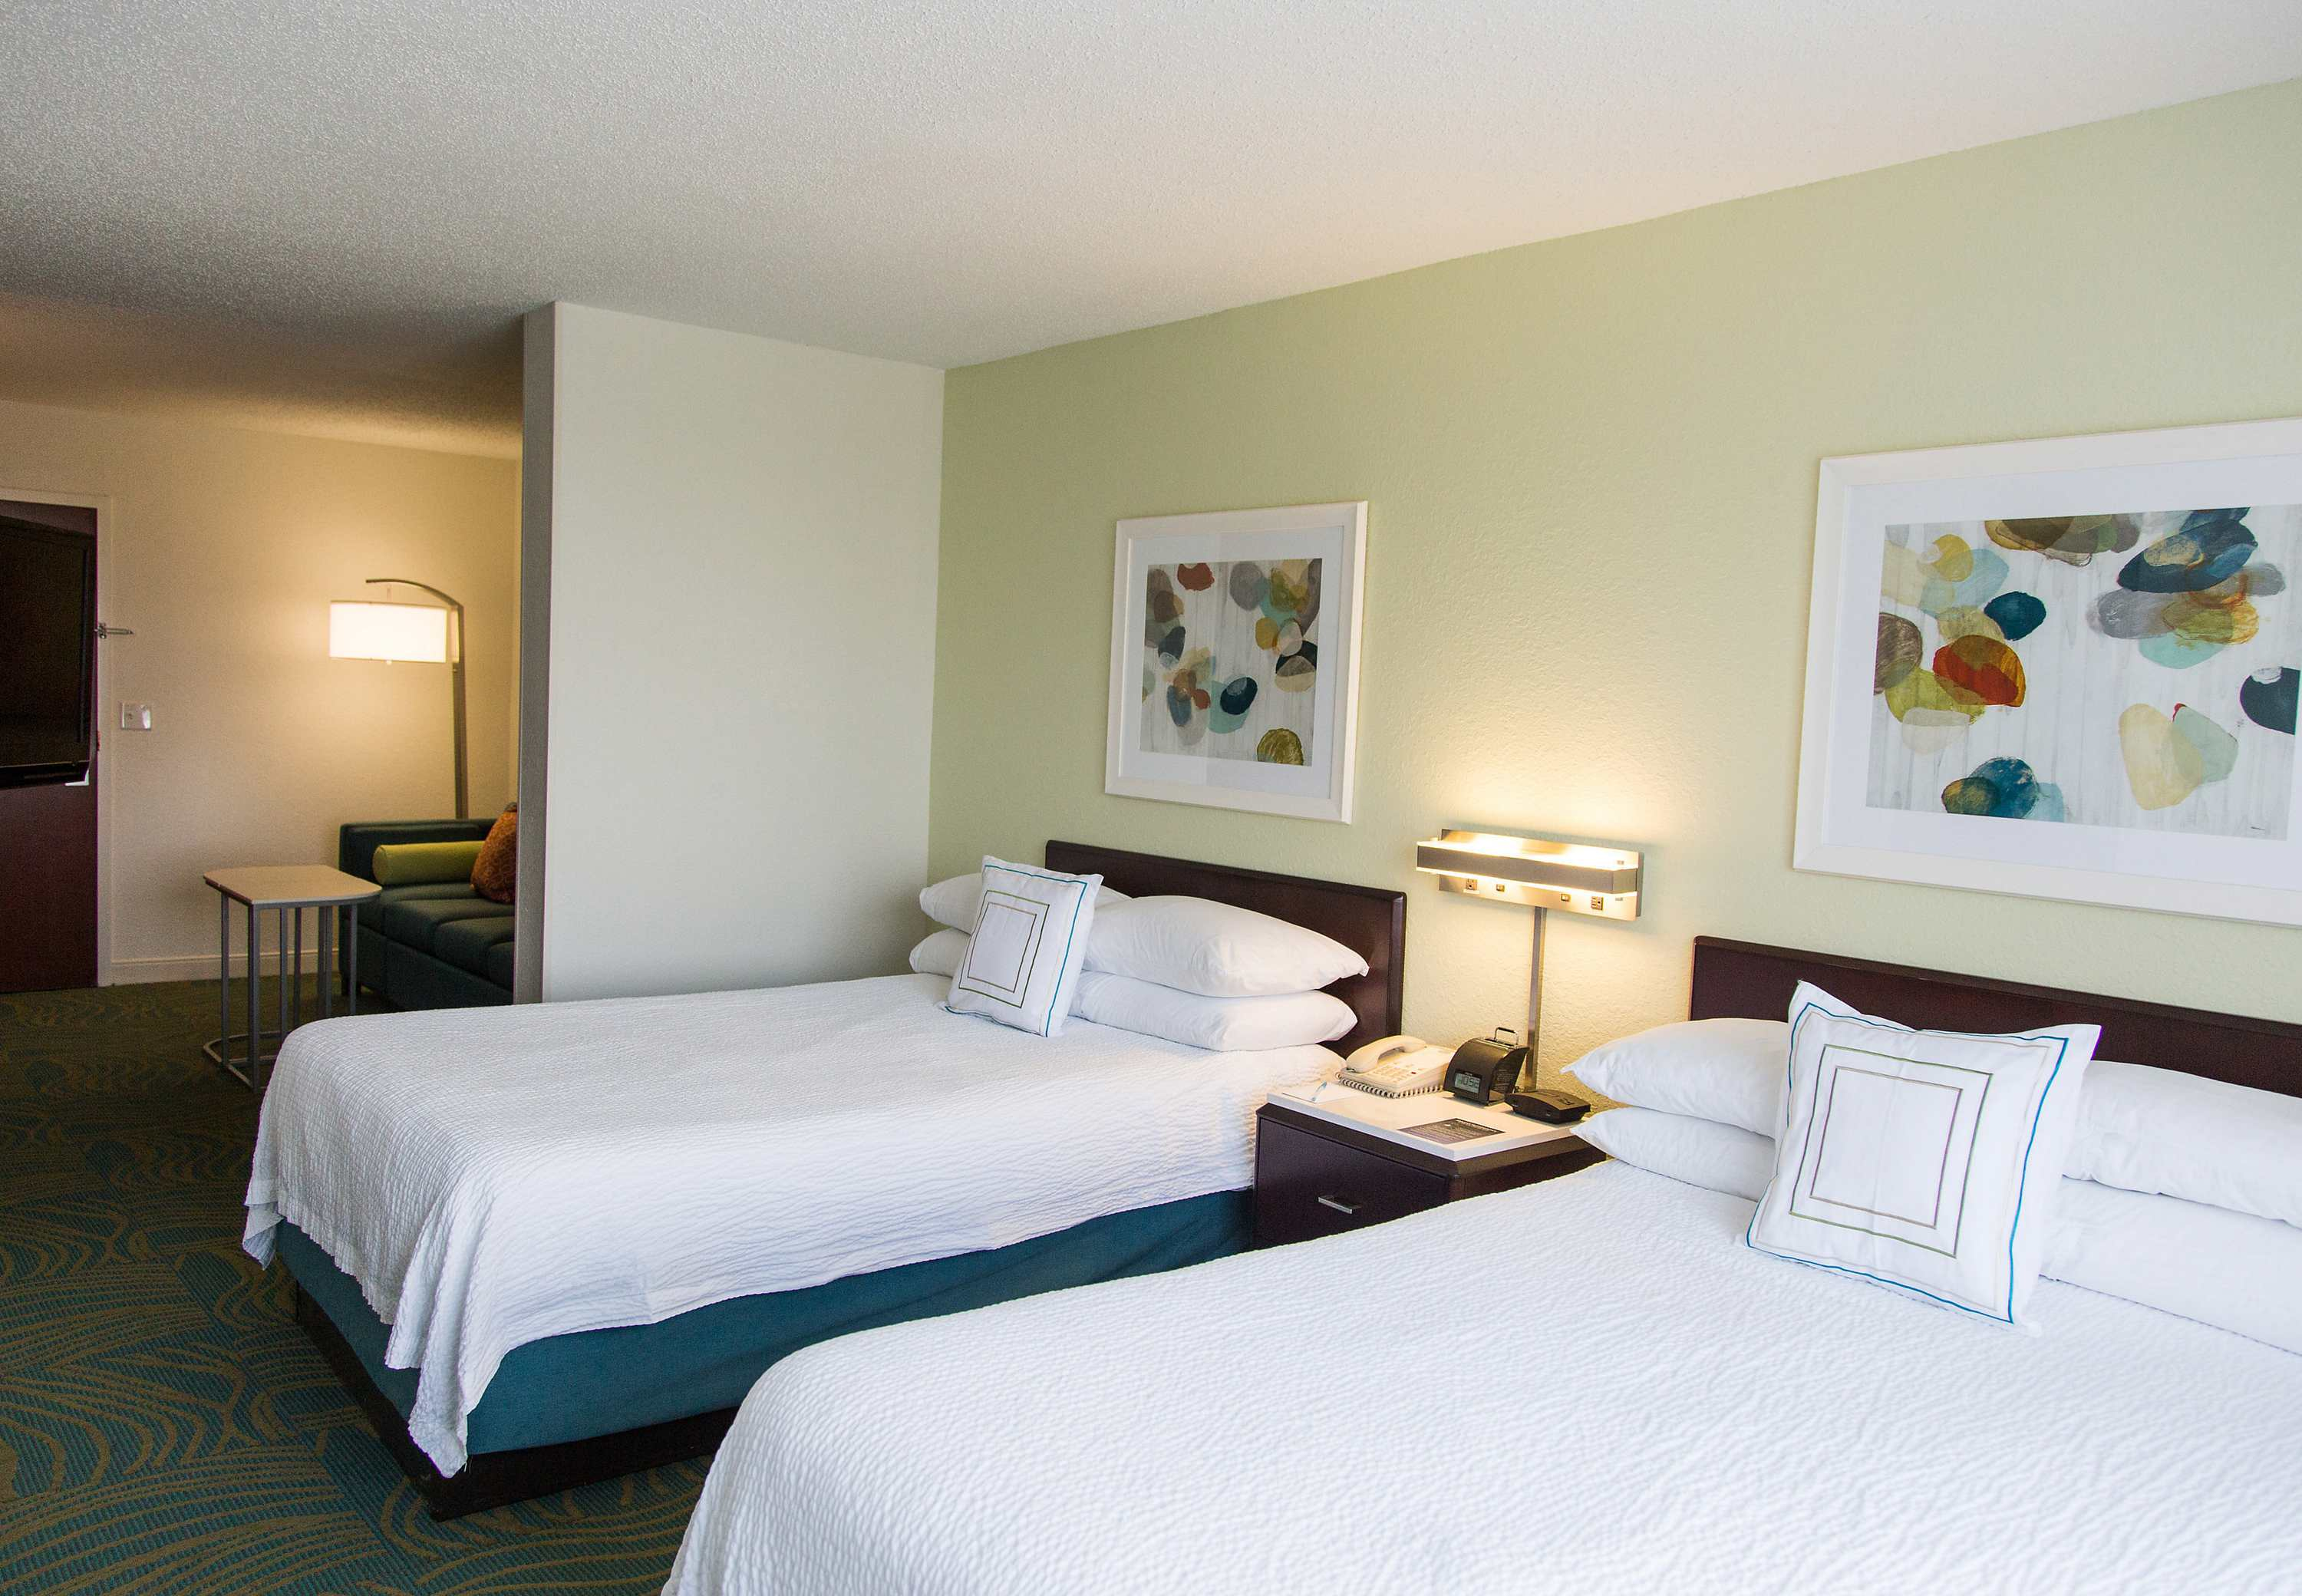 SpringHill Suites by Marriott Jacksonville image 3